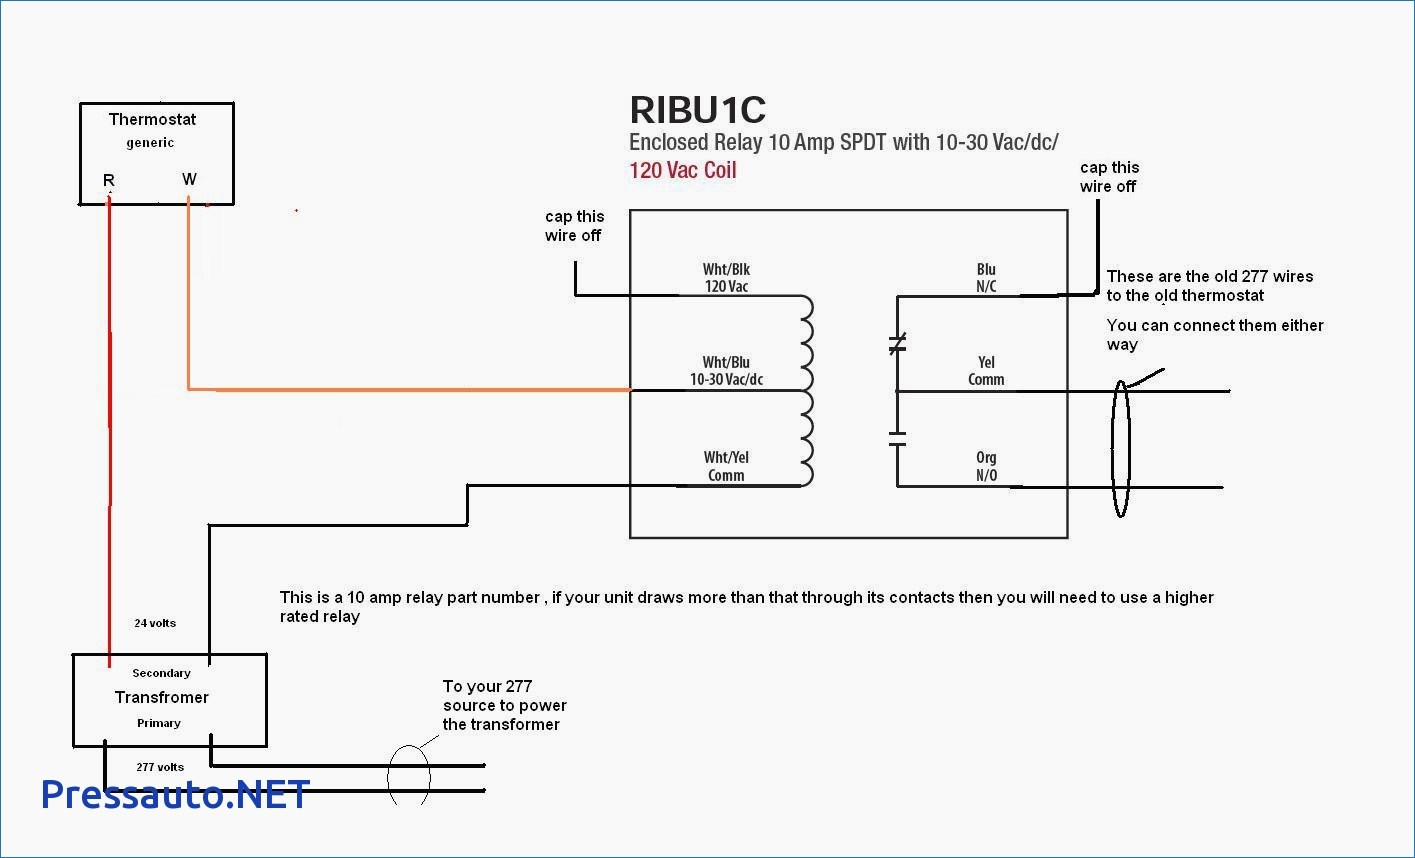 fuel pump wiring diagram for 1996 mustang rib2401b wiring diagram sample